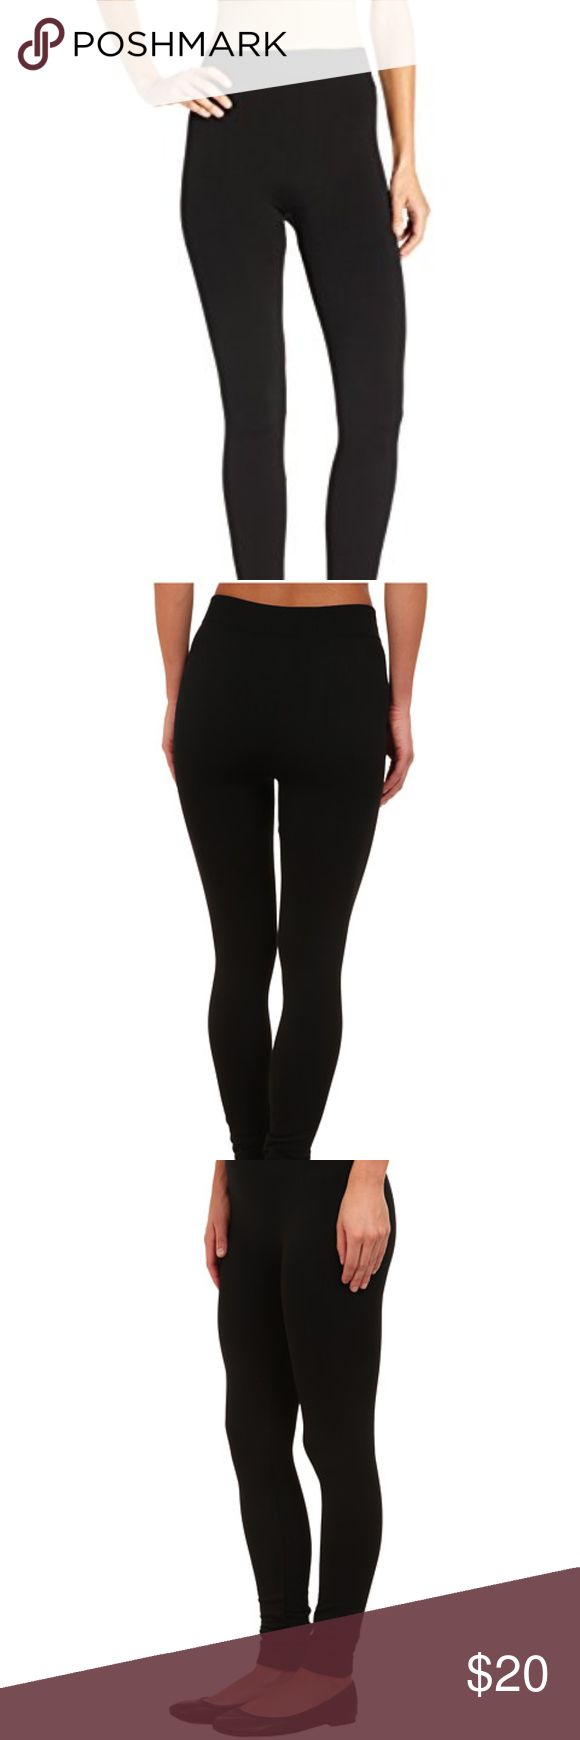 NEW FLEECE Leggings High quality. New with tags. Fleece lined seamless leggings. Soft and cozy for Fall and Winter. Looks nice with tunics and moto boots.  Approx measurements: L/XL fits 135-185 lbs. S/M fits 90-135 lbs. Fabric: Polyester Spandex. Boutique Pants Leggings